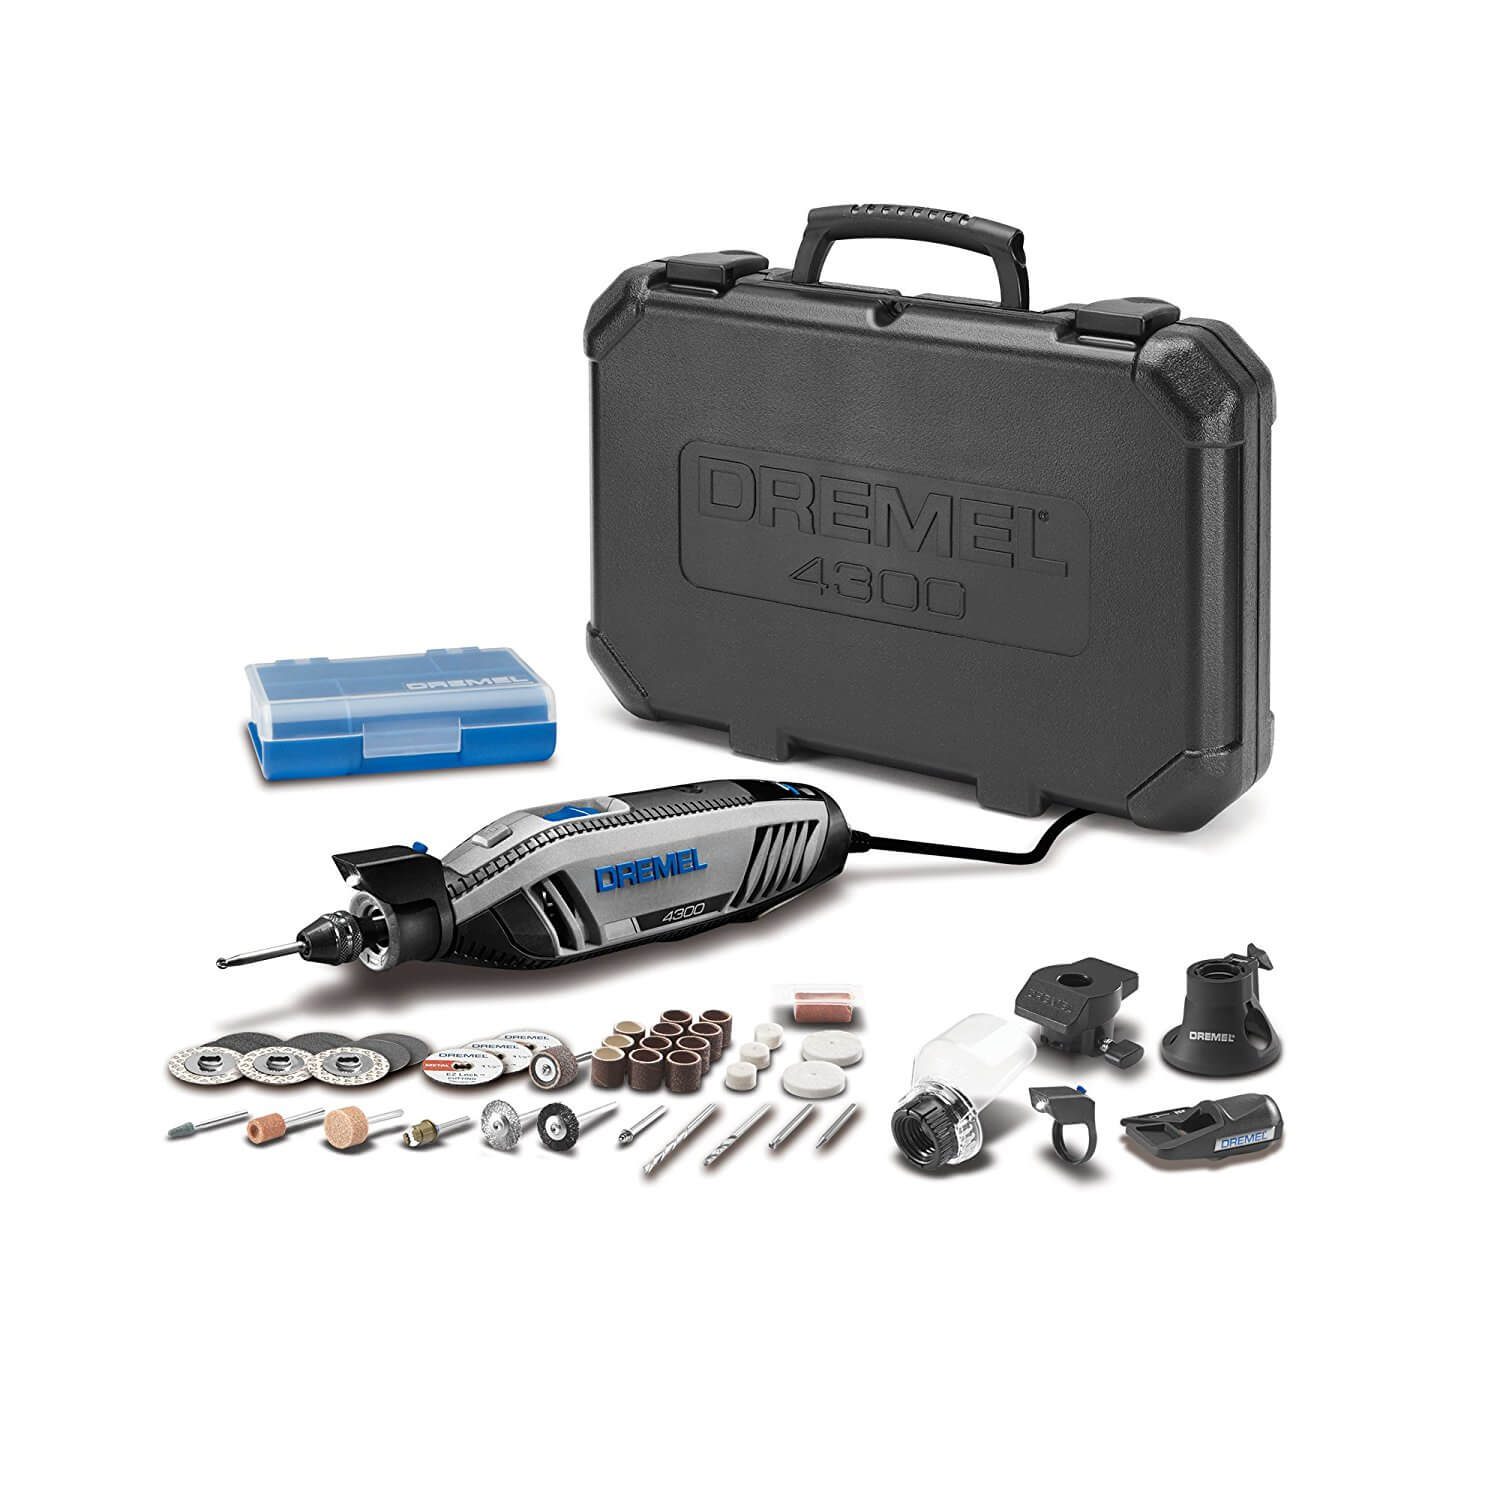 Best Rotary Tool Reviews 2020 – Dremel Tool Comparison